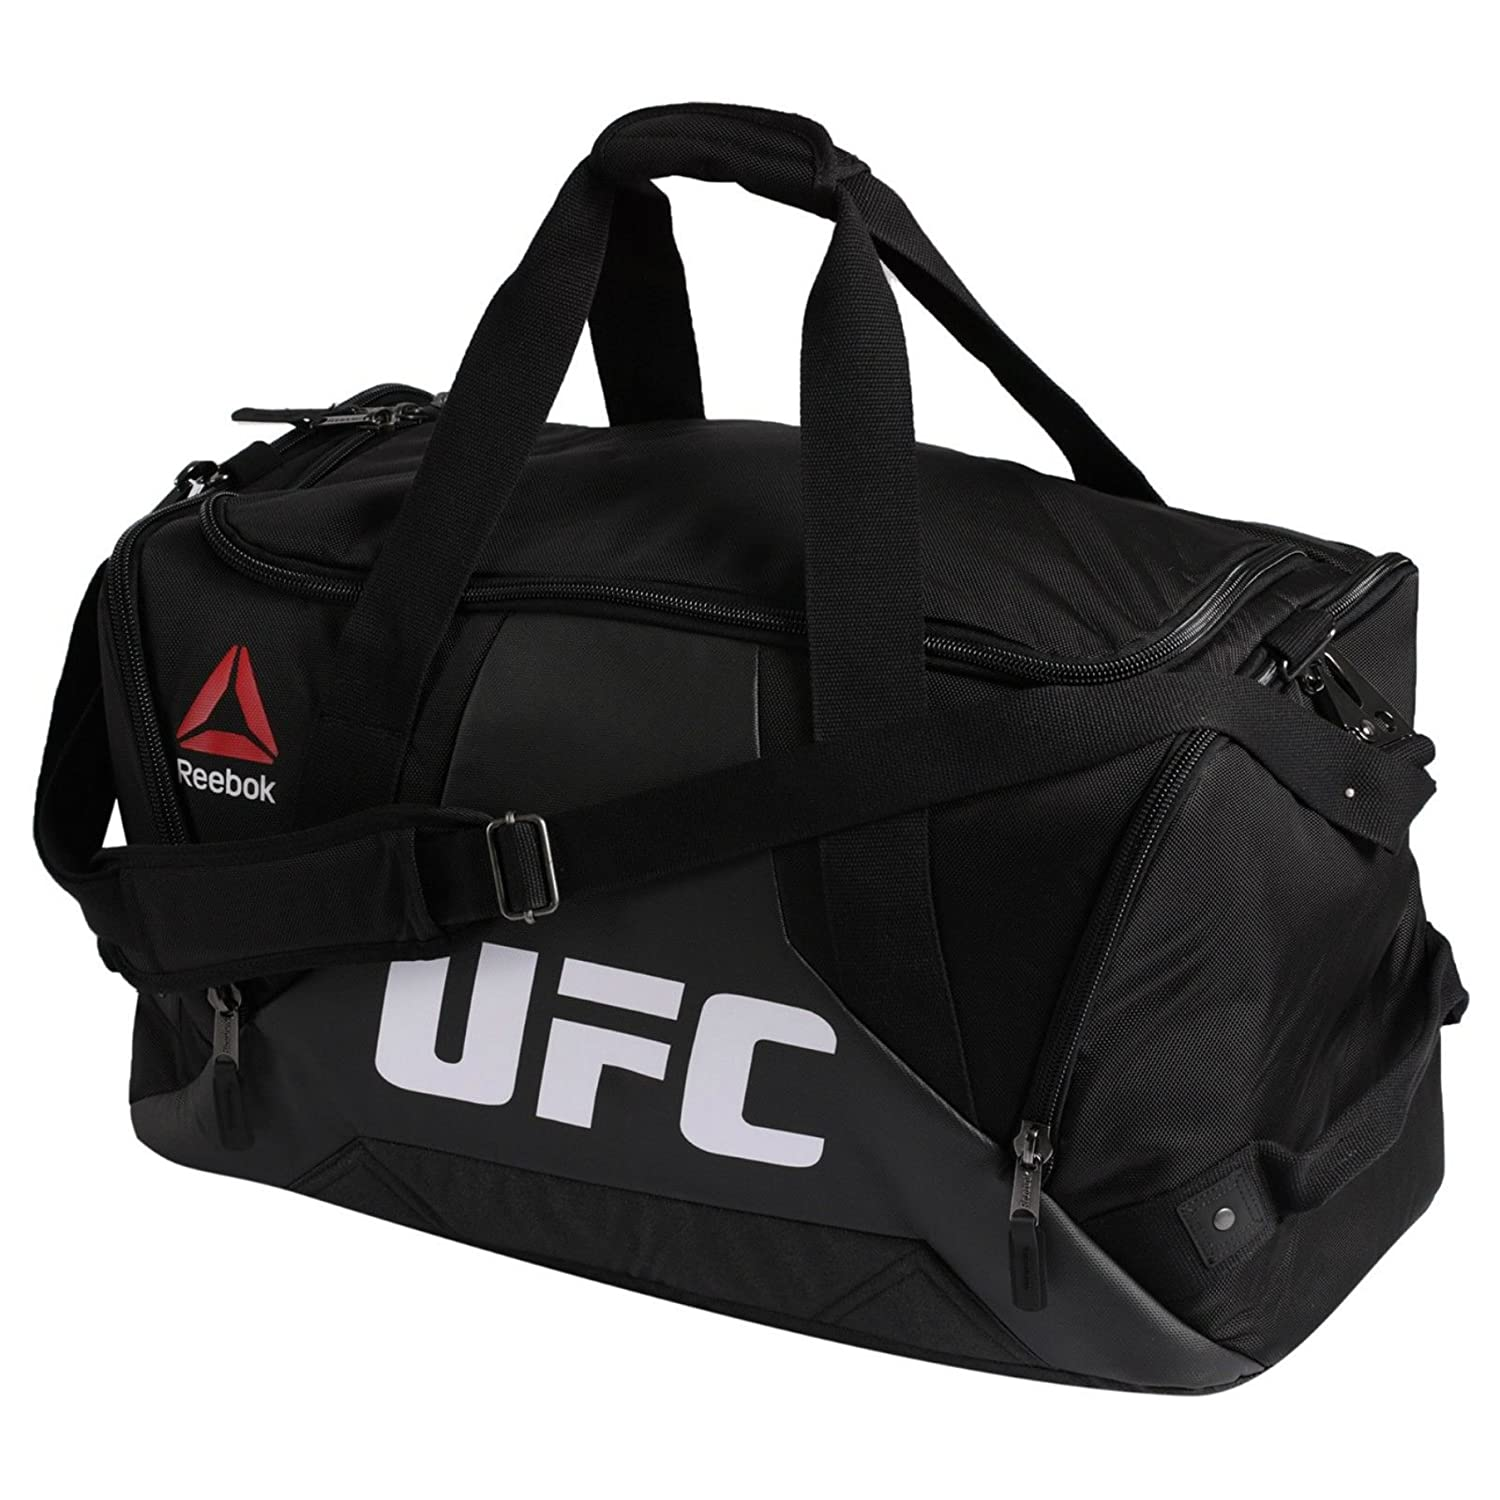 a20a9a03df Reebok Combat Grip UFC Fitness & Training Duffle Sport Bag in Black White  Red Yellow